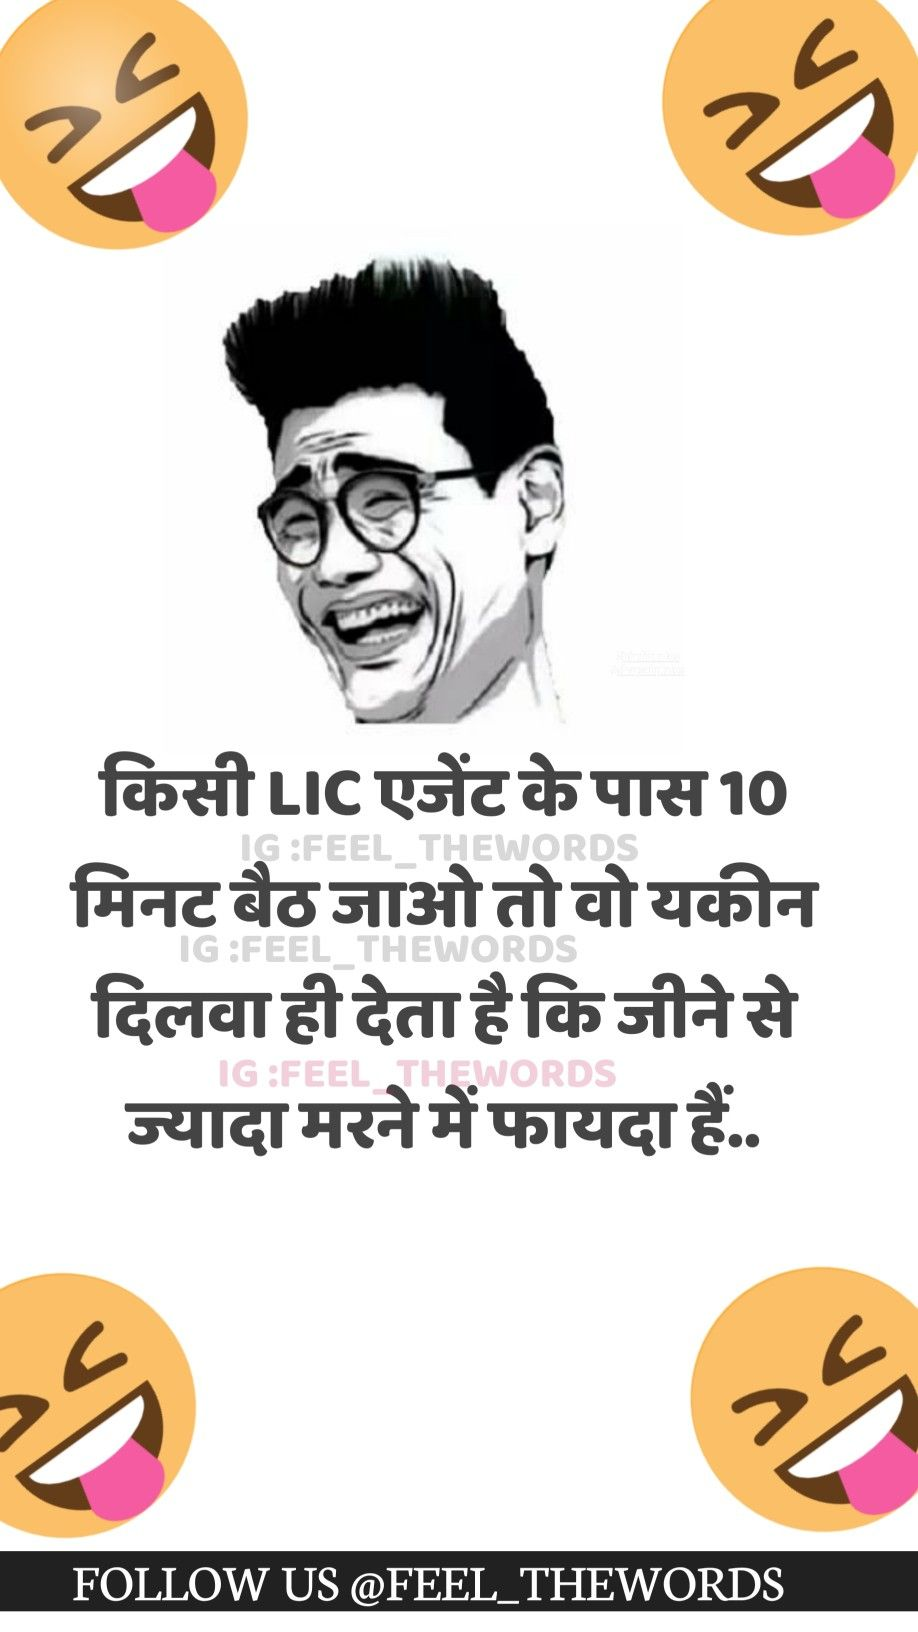 Pin By Feelthewordz On Hindi Jokes Jokes In Hindi Memes Jokes